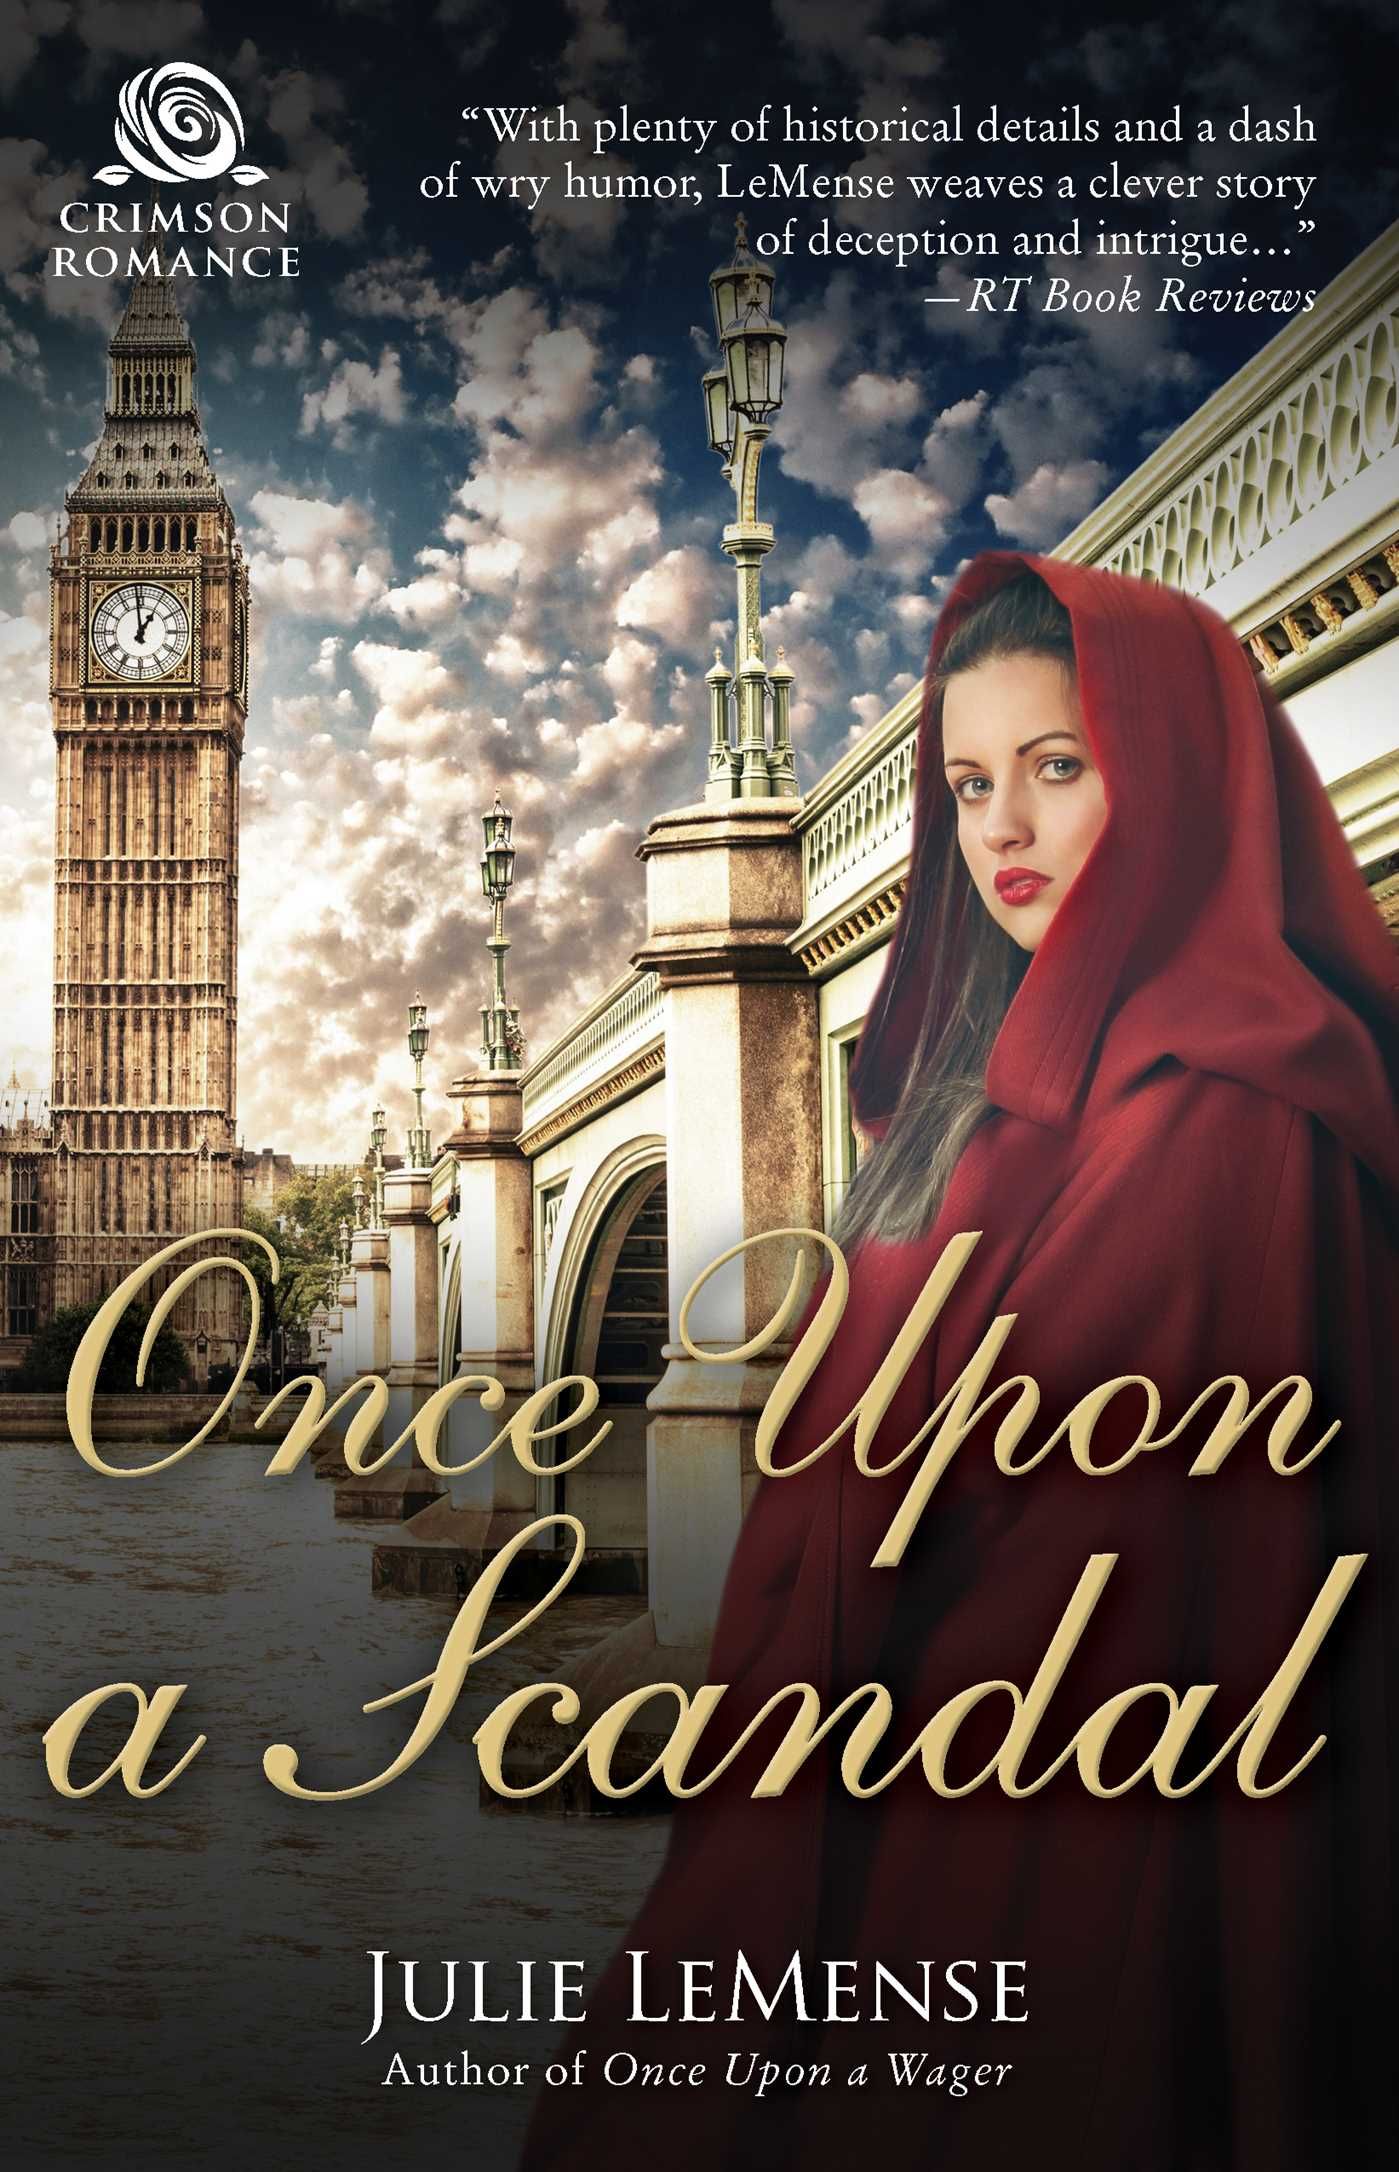 Once upon a scandal 9781440586651 hr